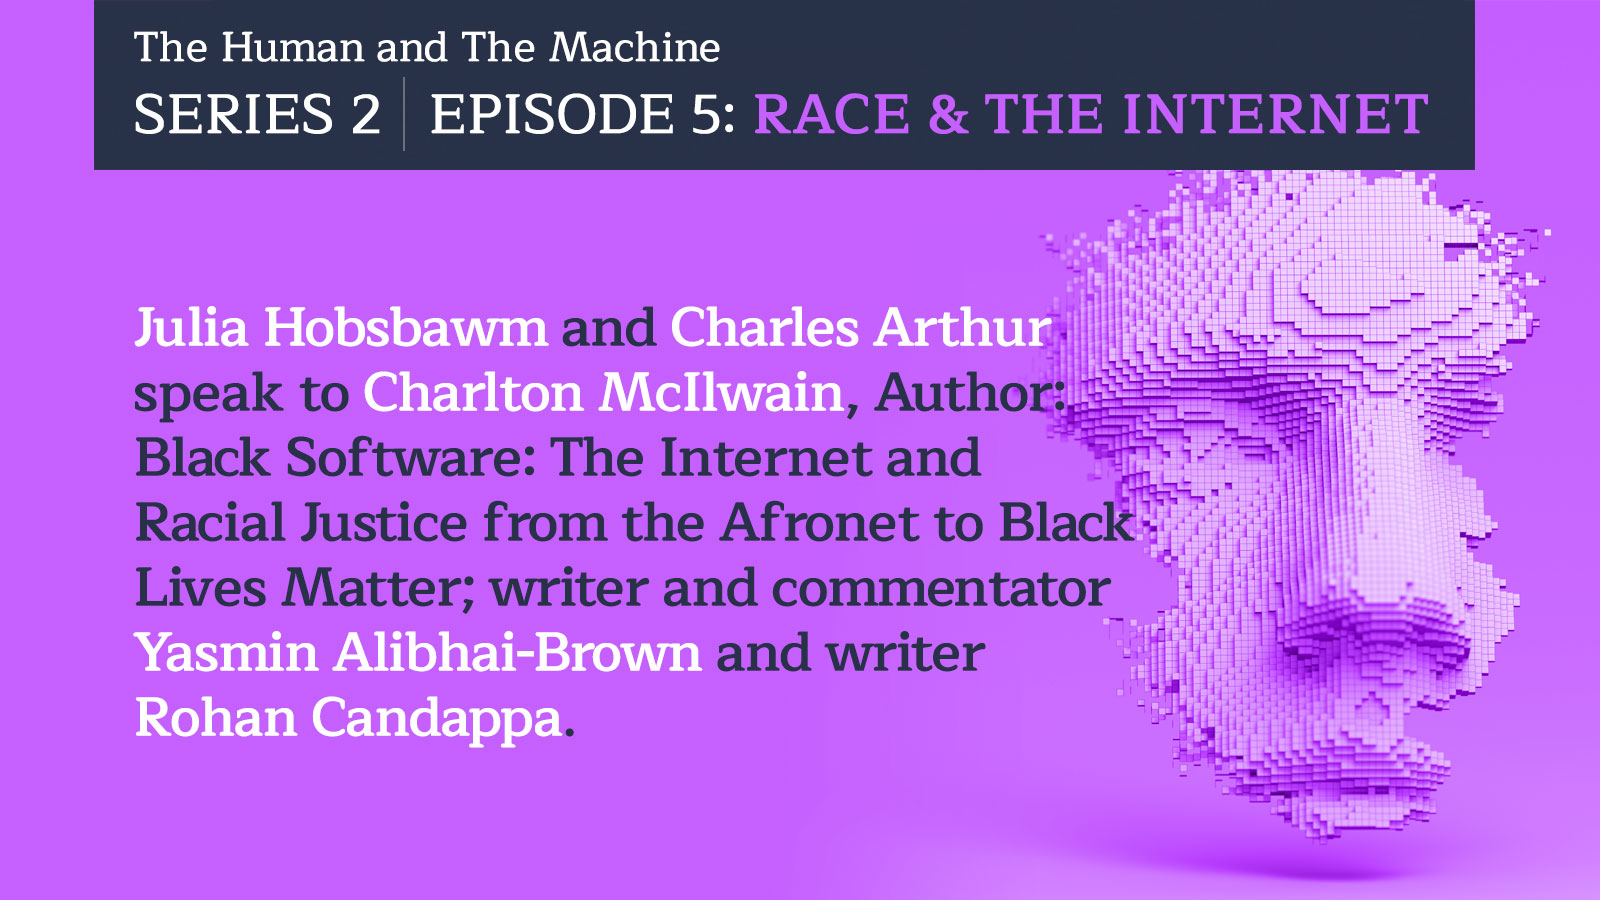 Race & the Internet